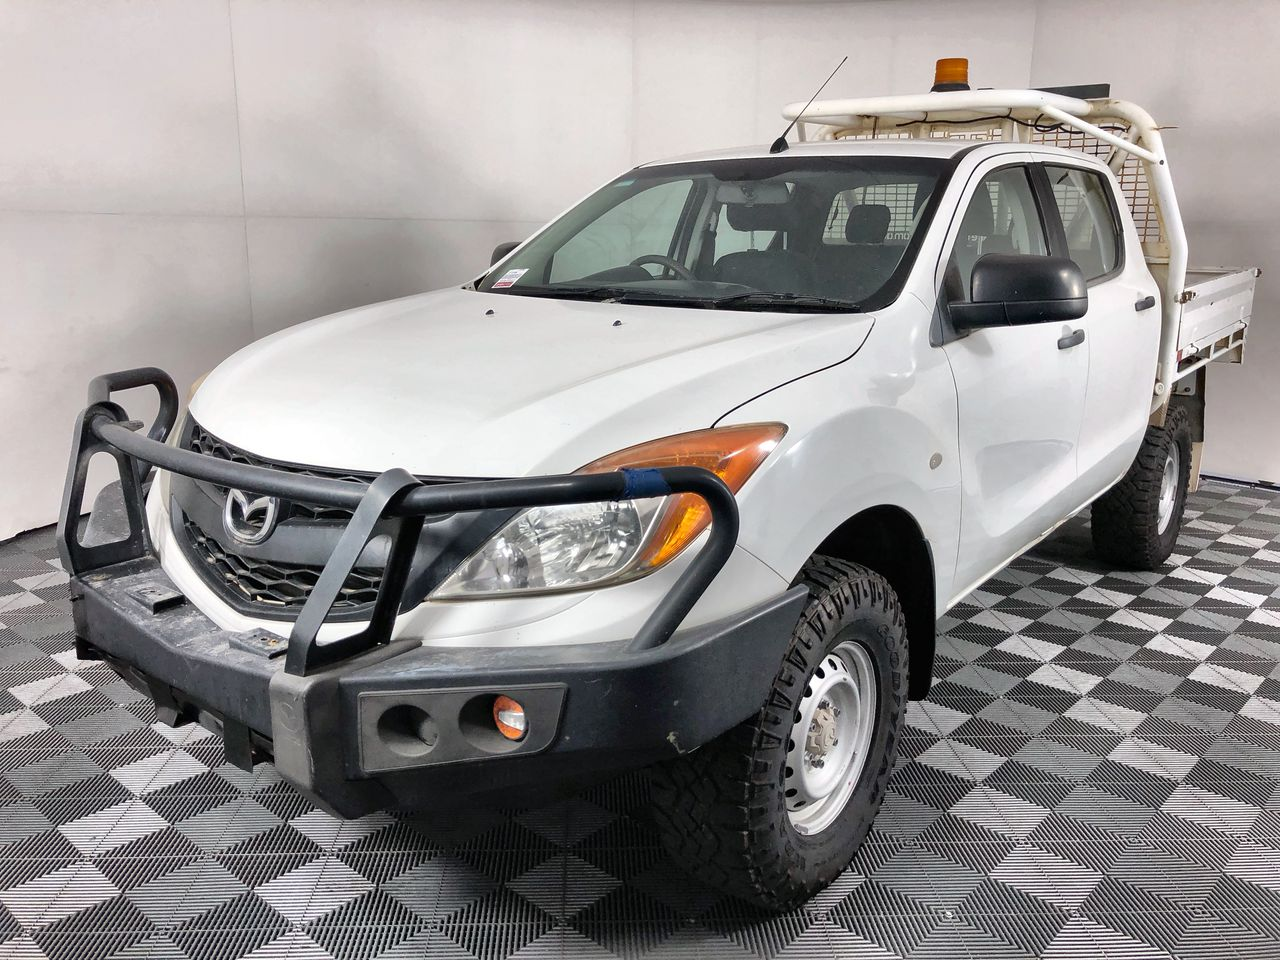 2012 Mazda BT-50 4X4 XT Turbo Diesel Automatic Dual Cab Chassis